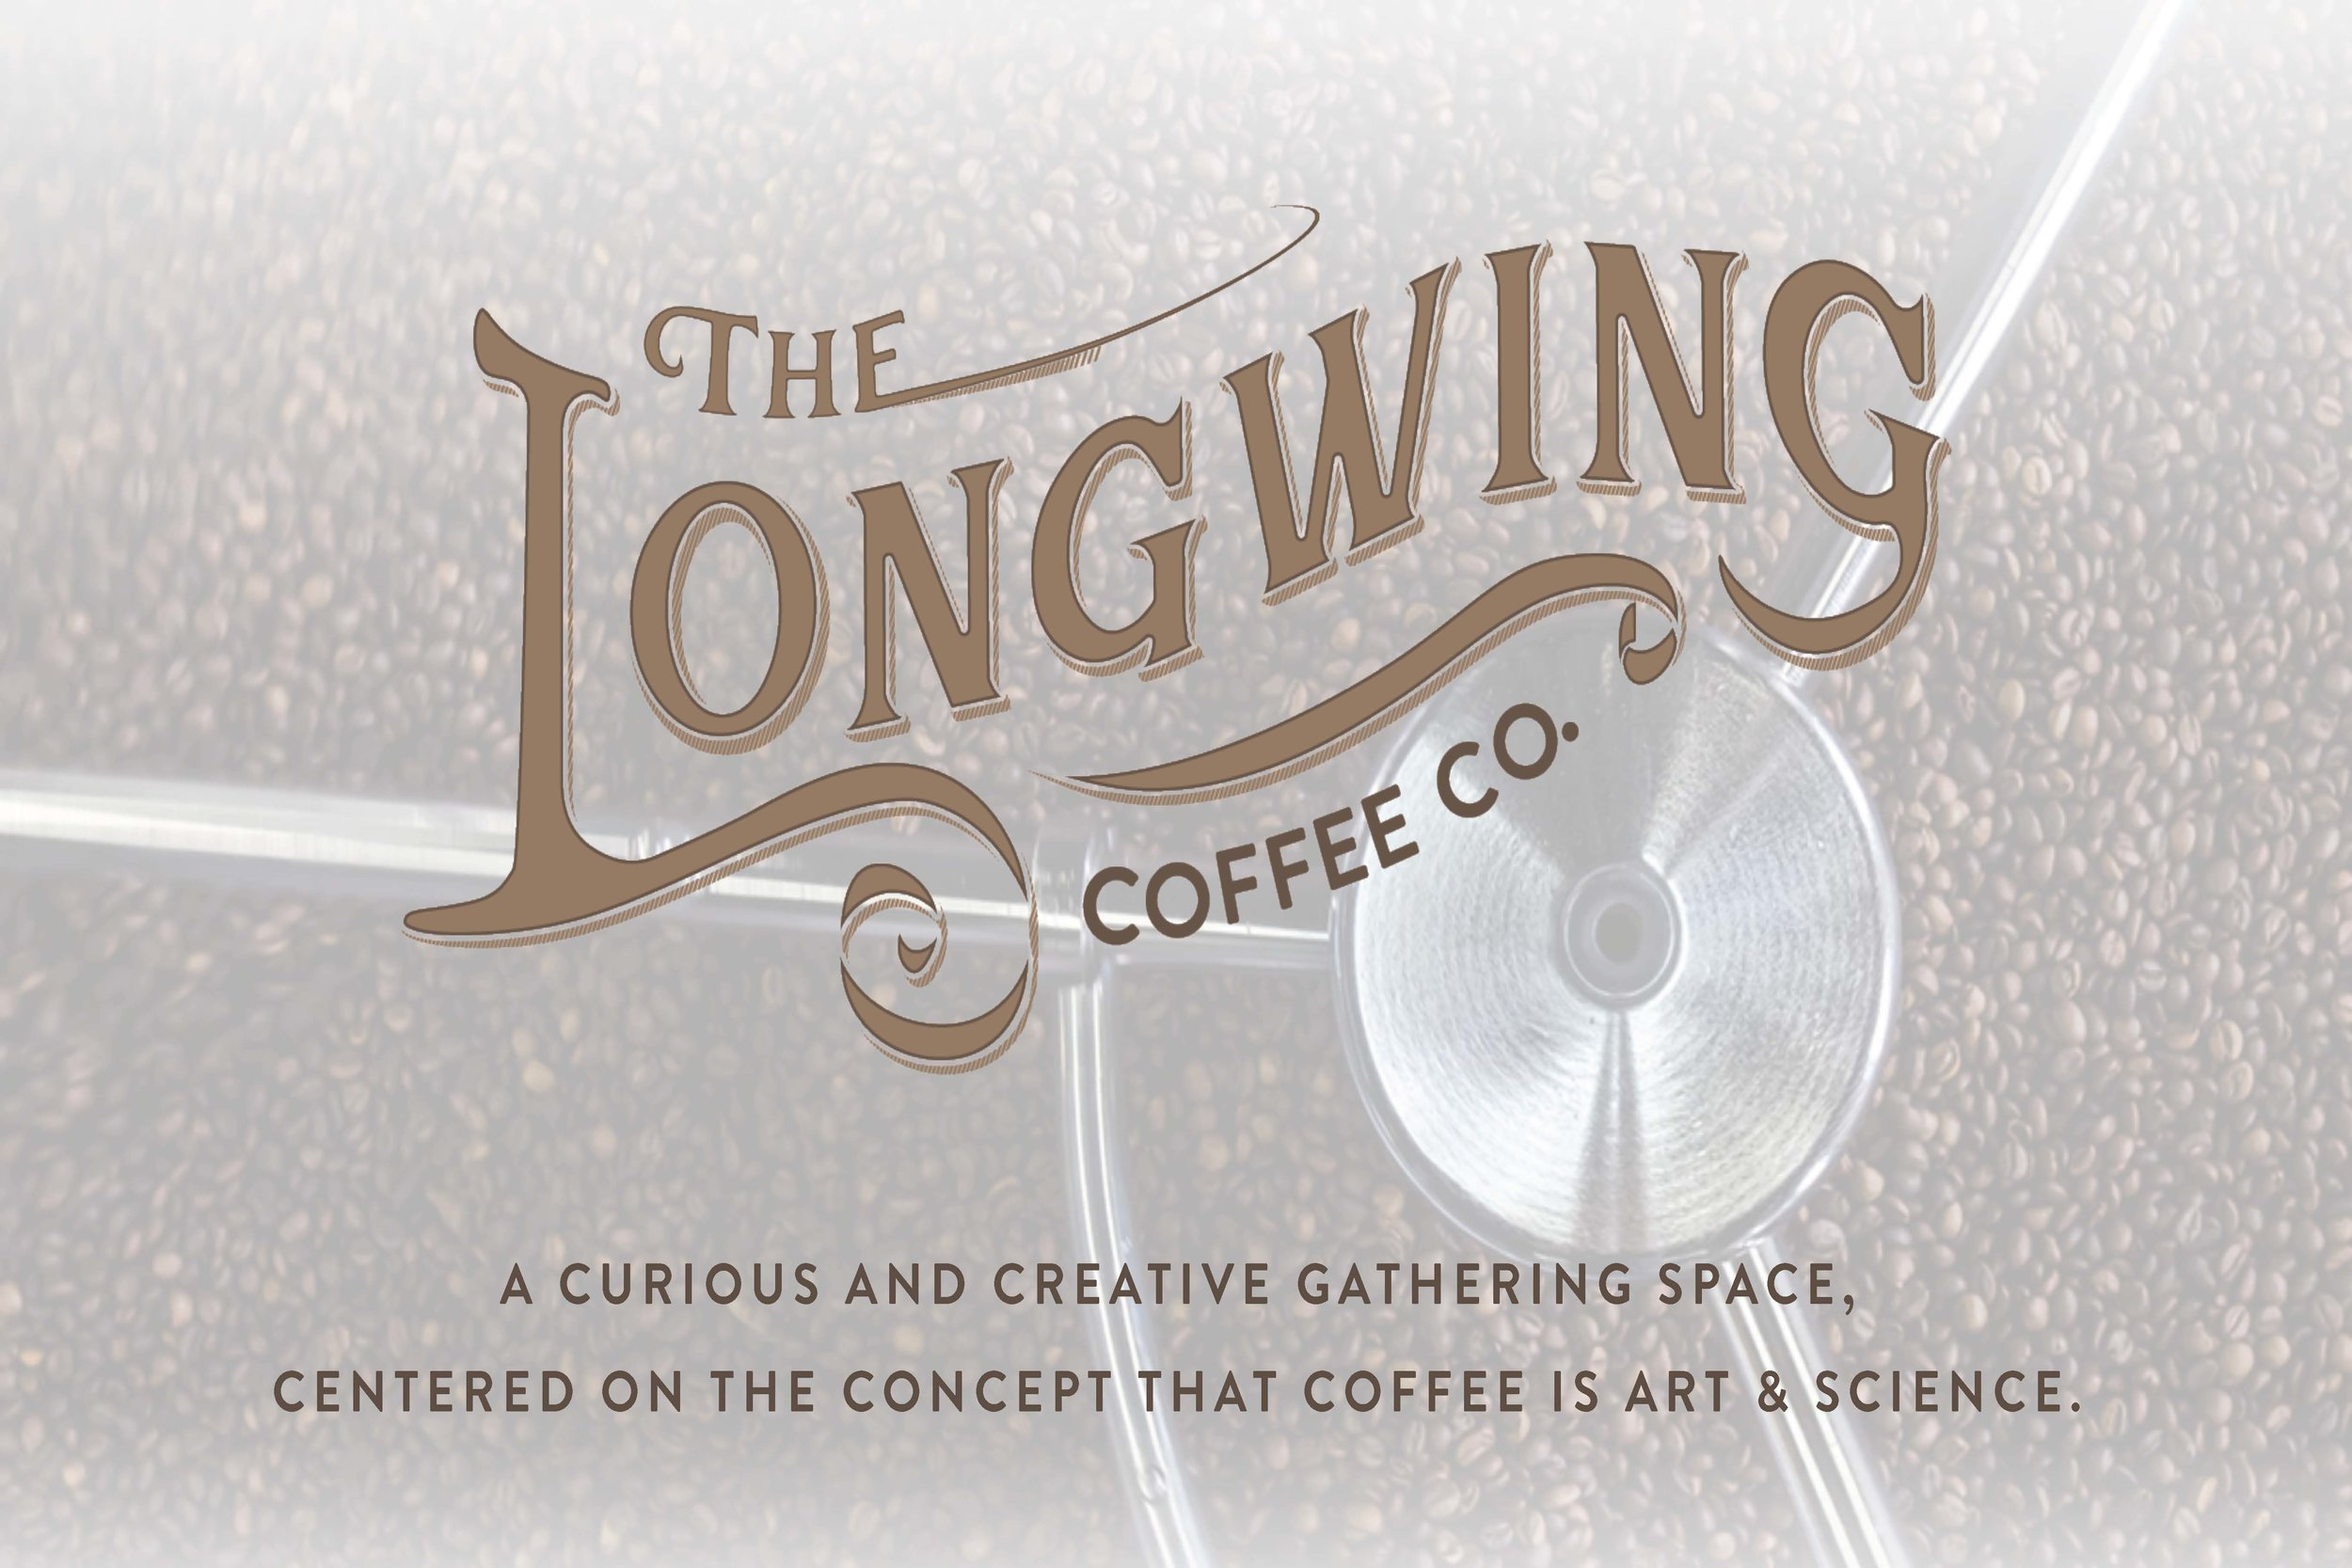 LongwingCoffeeCo_Demo Day Pitch Deck_08162018_Page_2.jpg